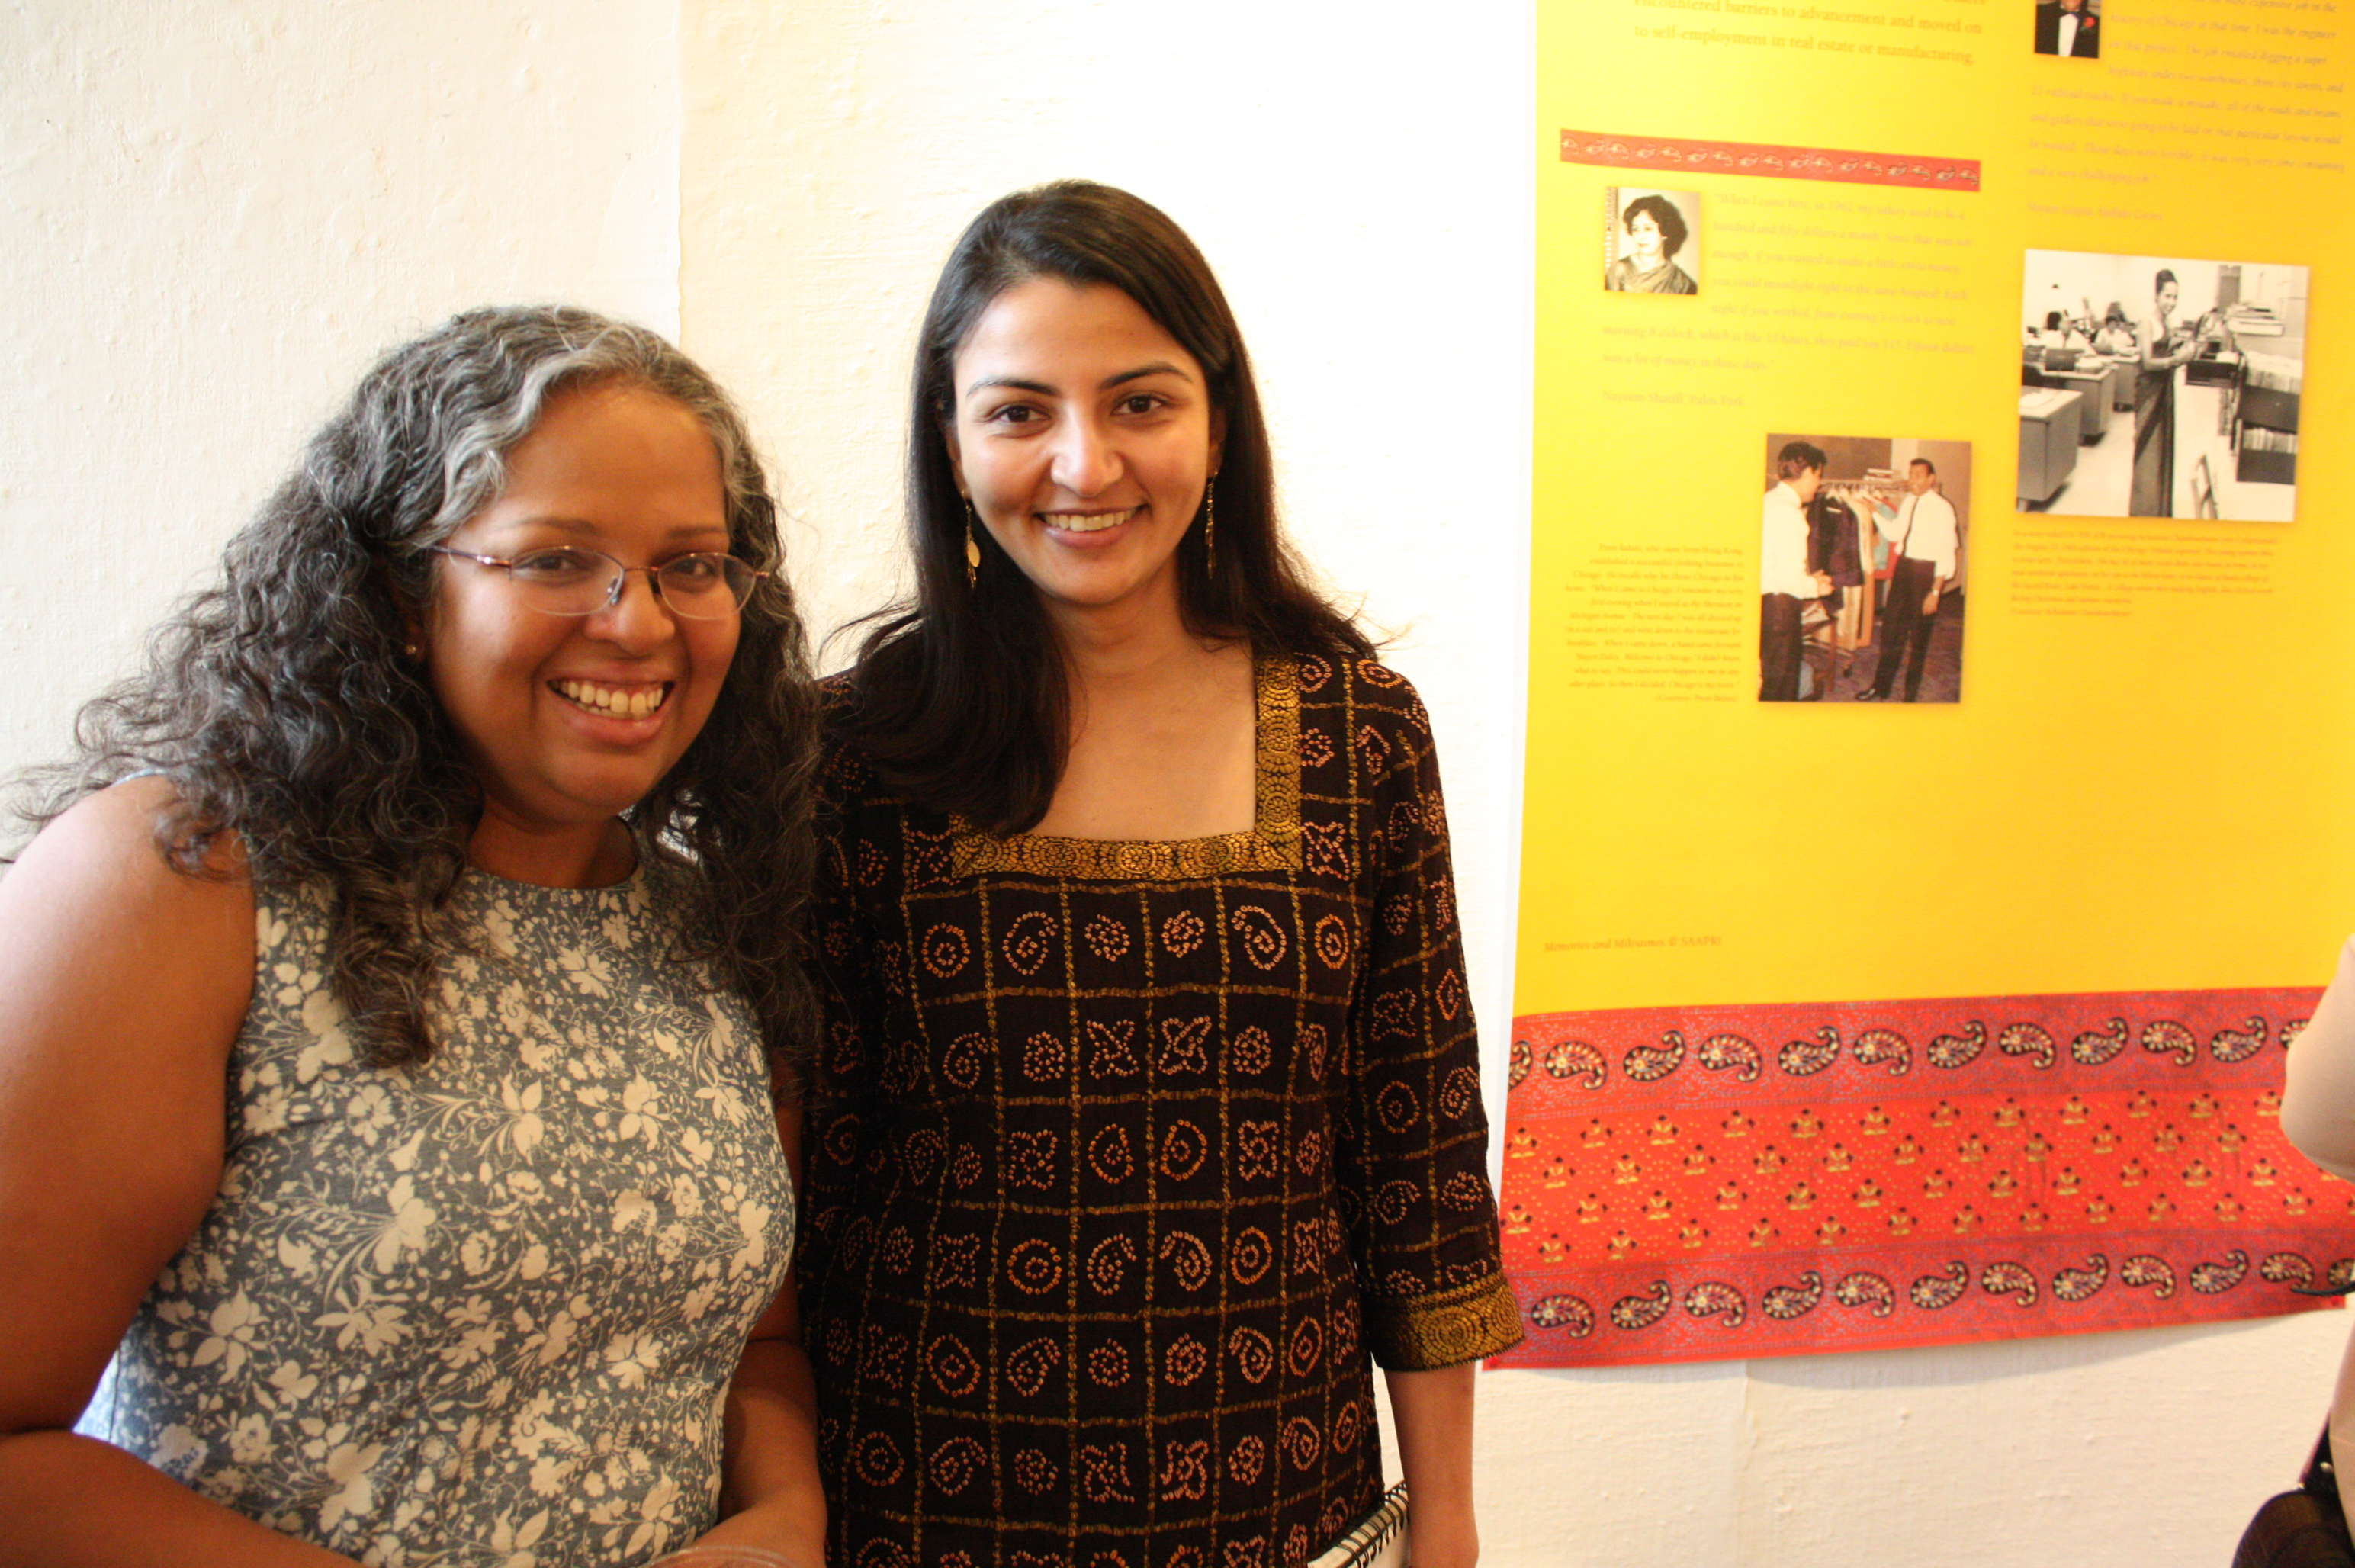 (left to right) Mary Anne Mohanraj, festival director, and Ami Gandhi, executive director of SAAPRI, at the opening night reception